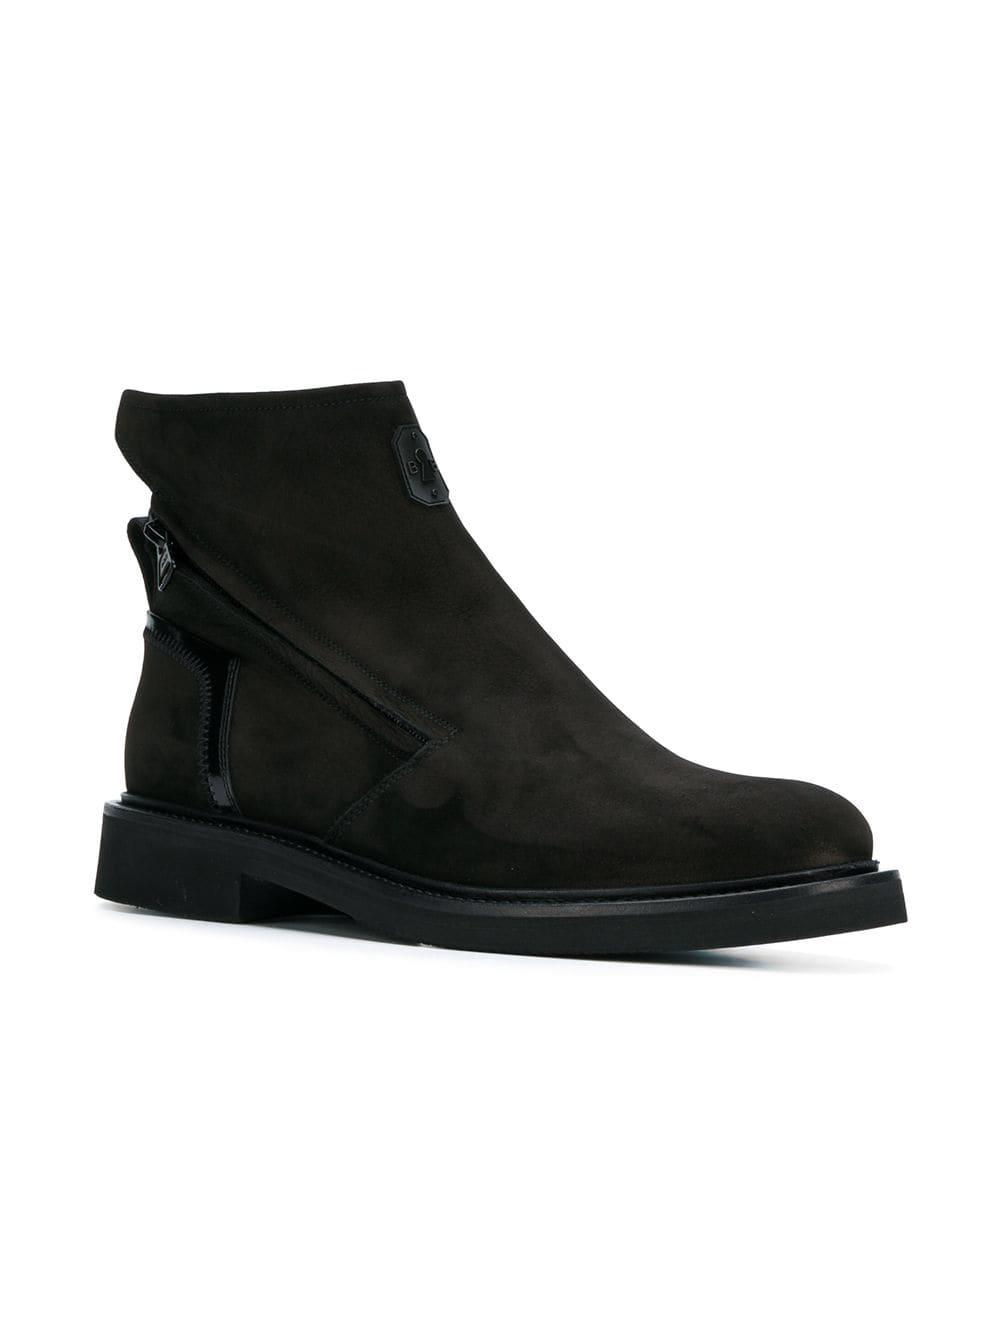 Bruno Bordese Leather Zipped Ankle Boots in Black for Men